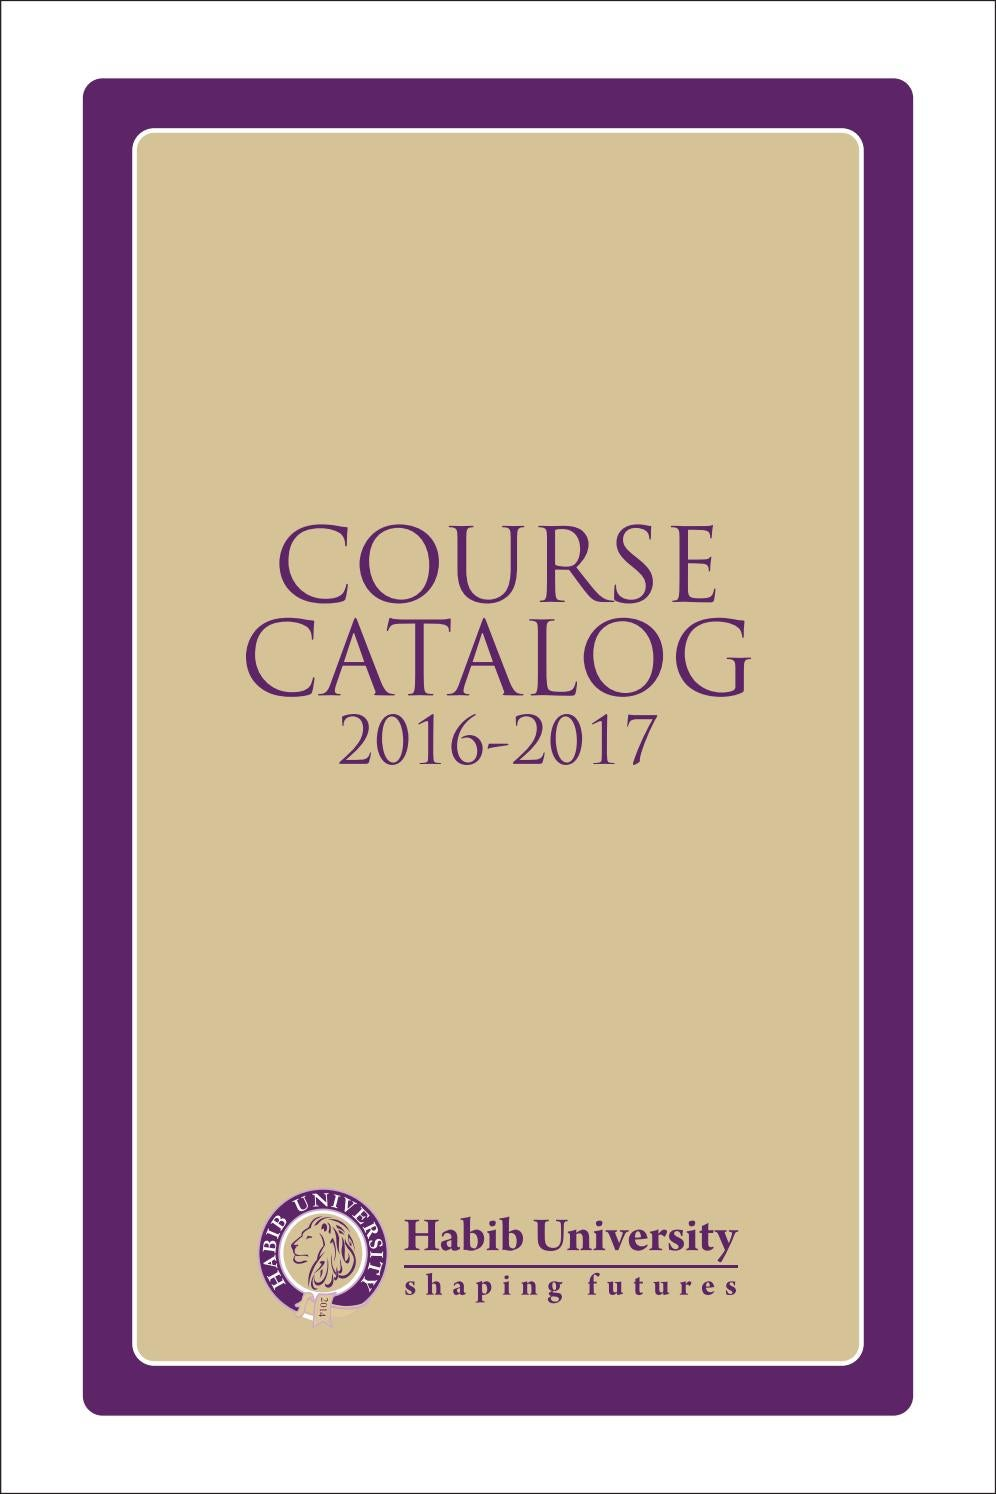 Habib University Course Catalog 2015 2016 By Issuu How To Connect Ampere Meter Home Wiring Urdu And Hindi Video